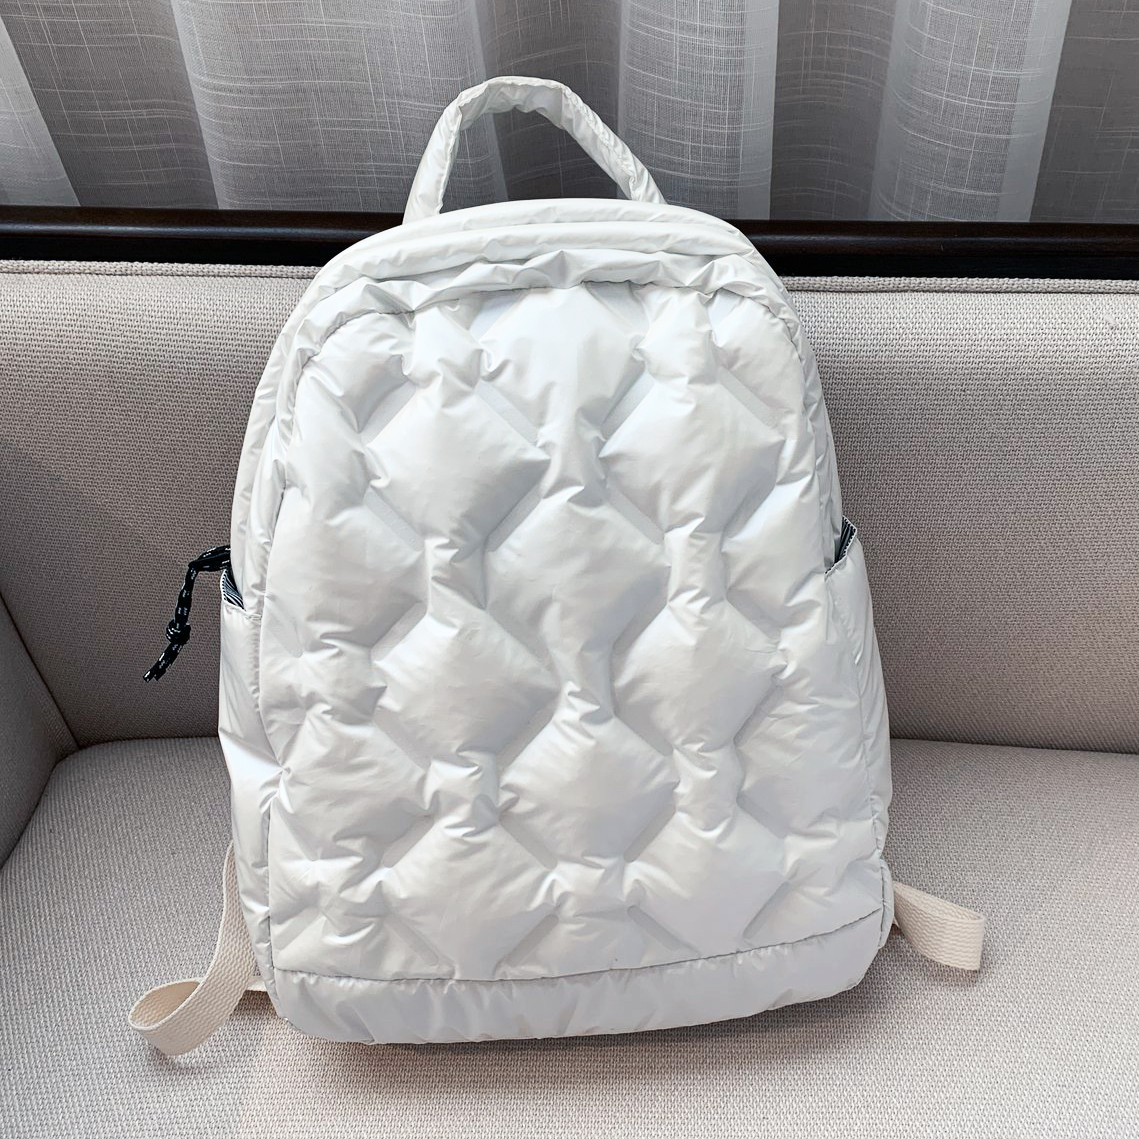 Ultralight Winter Warm Space Down Backpack Women School Backpack Bags for Girls Fashion Trend Lightweight Cotton Travel Bags